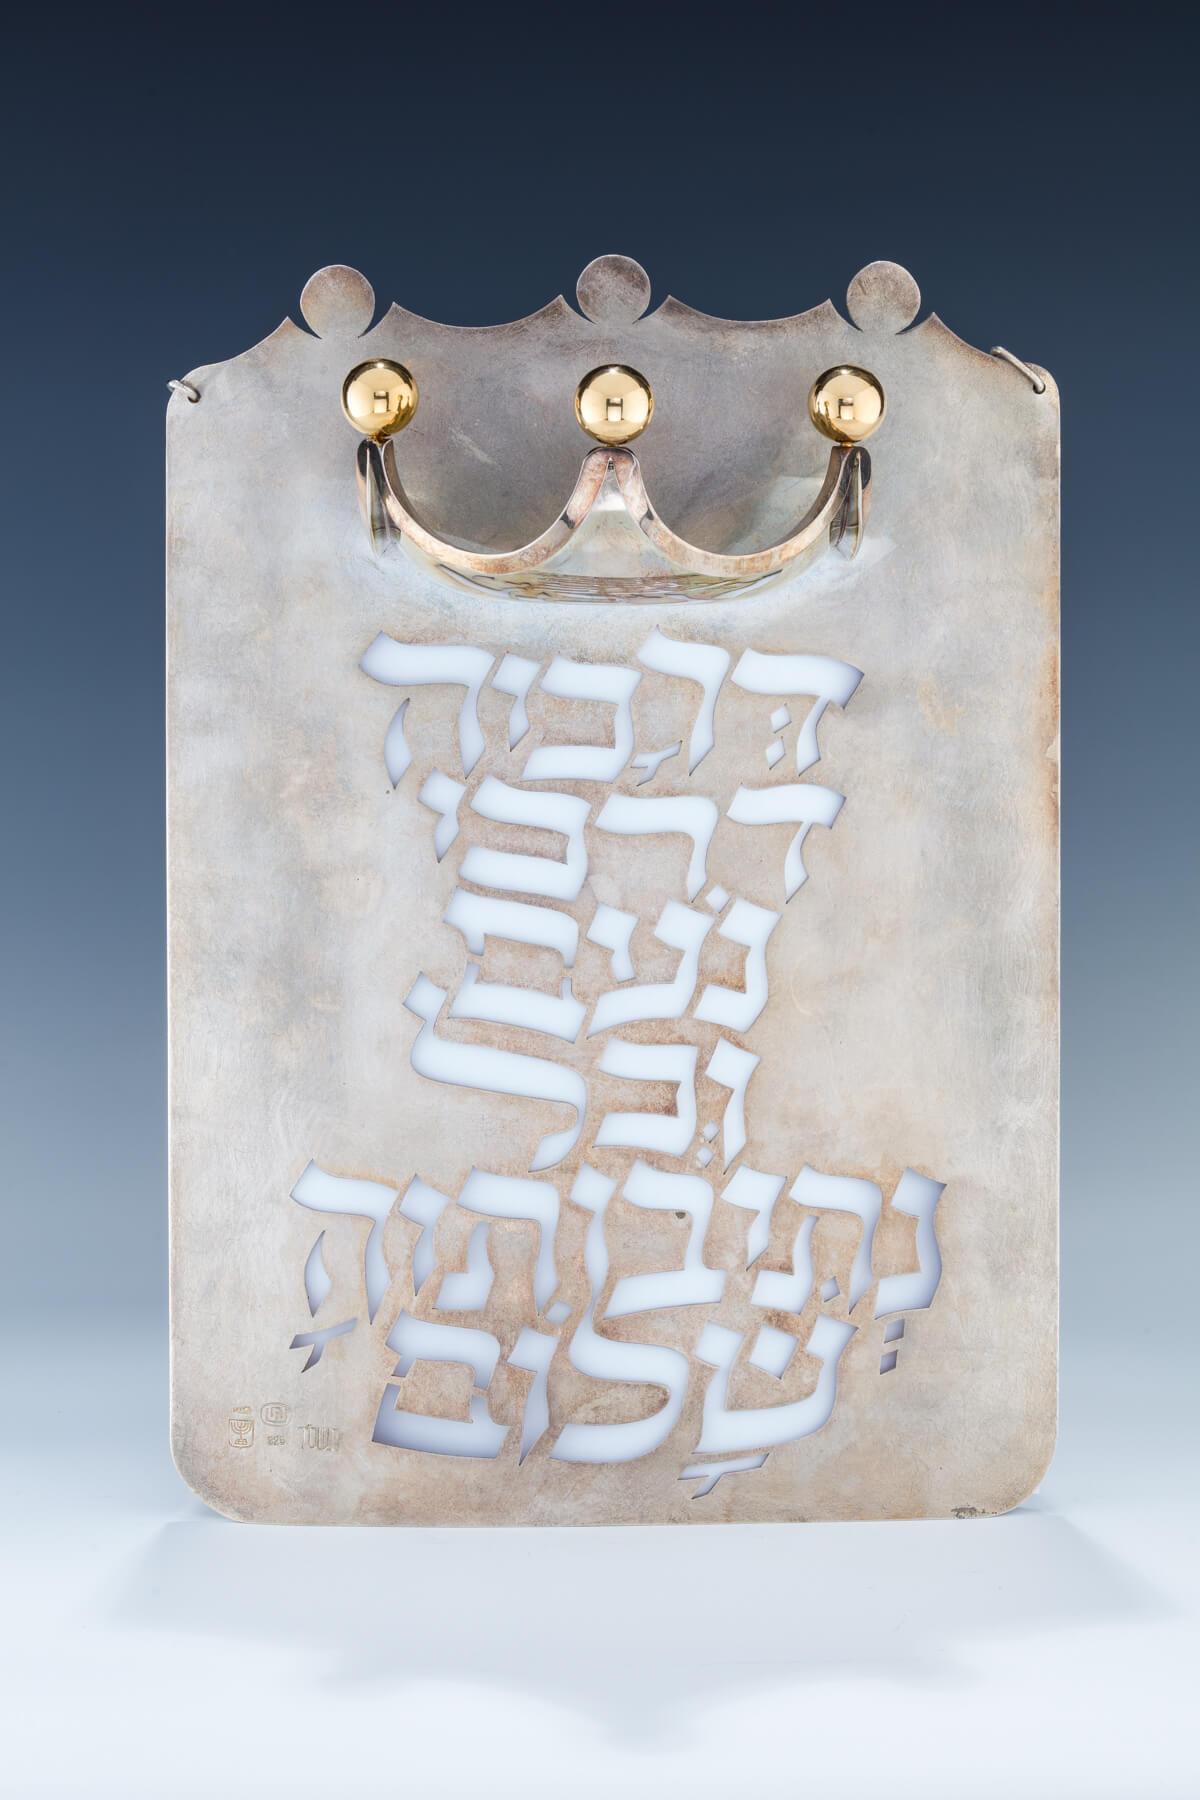 126. A Massive Sterling Silver Torah Breastplate By Carmel Shabi